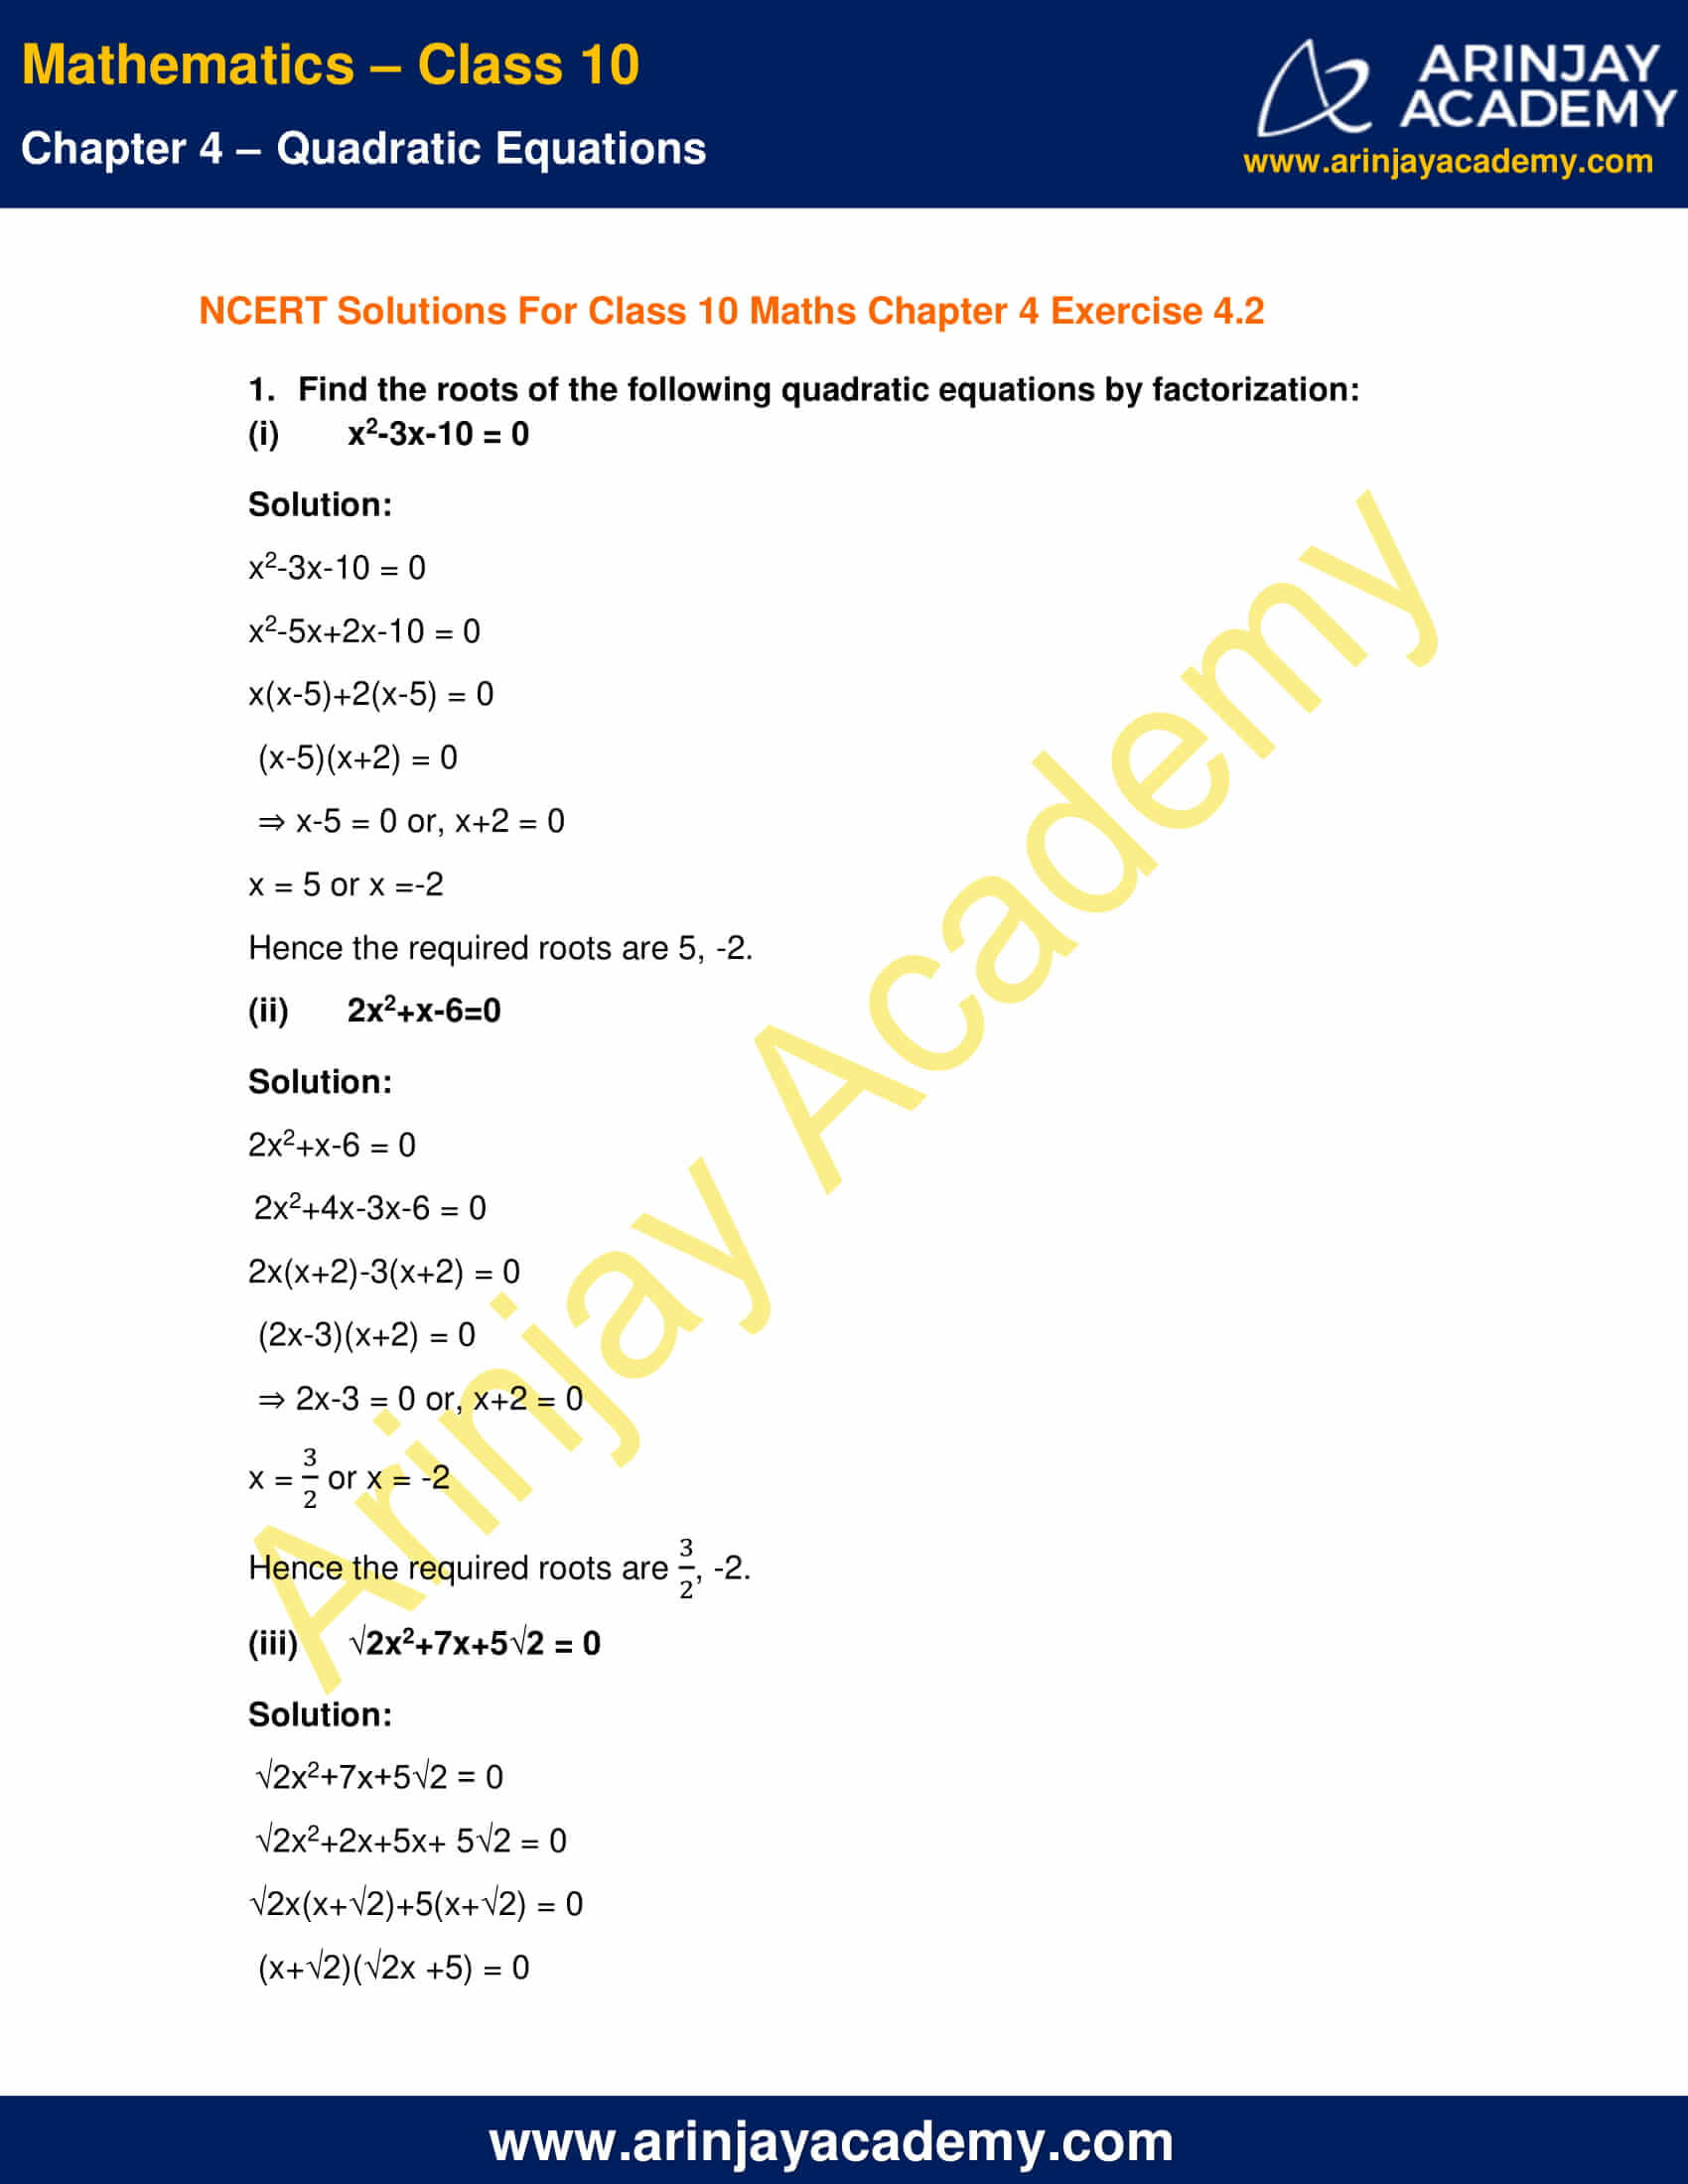 NCERT Solutions For Class 10 Maths Chapter 4 Exercise 4.2 image 1